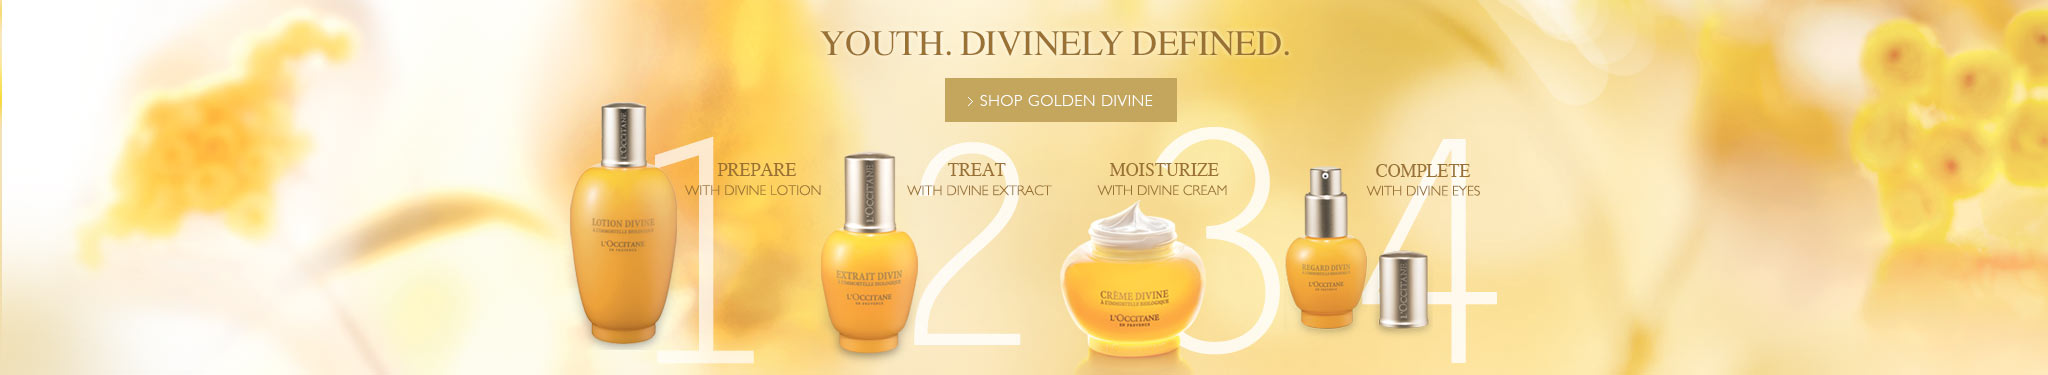 Youth. Divinely Defined.  Prepare with divine lotion, treat with divine extract, moisturize with divine cream, complete with divine eyes.